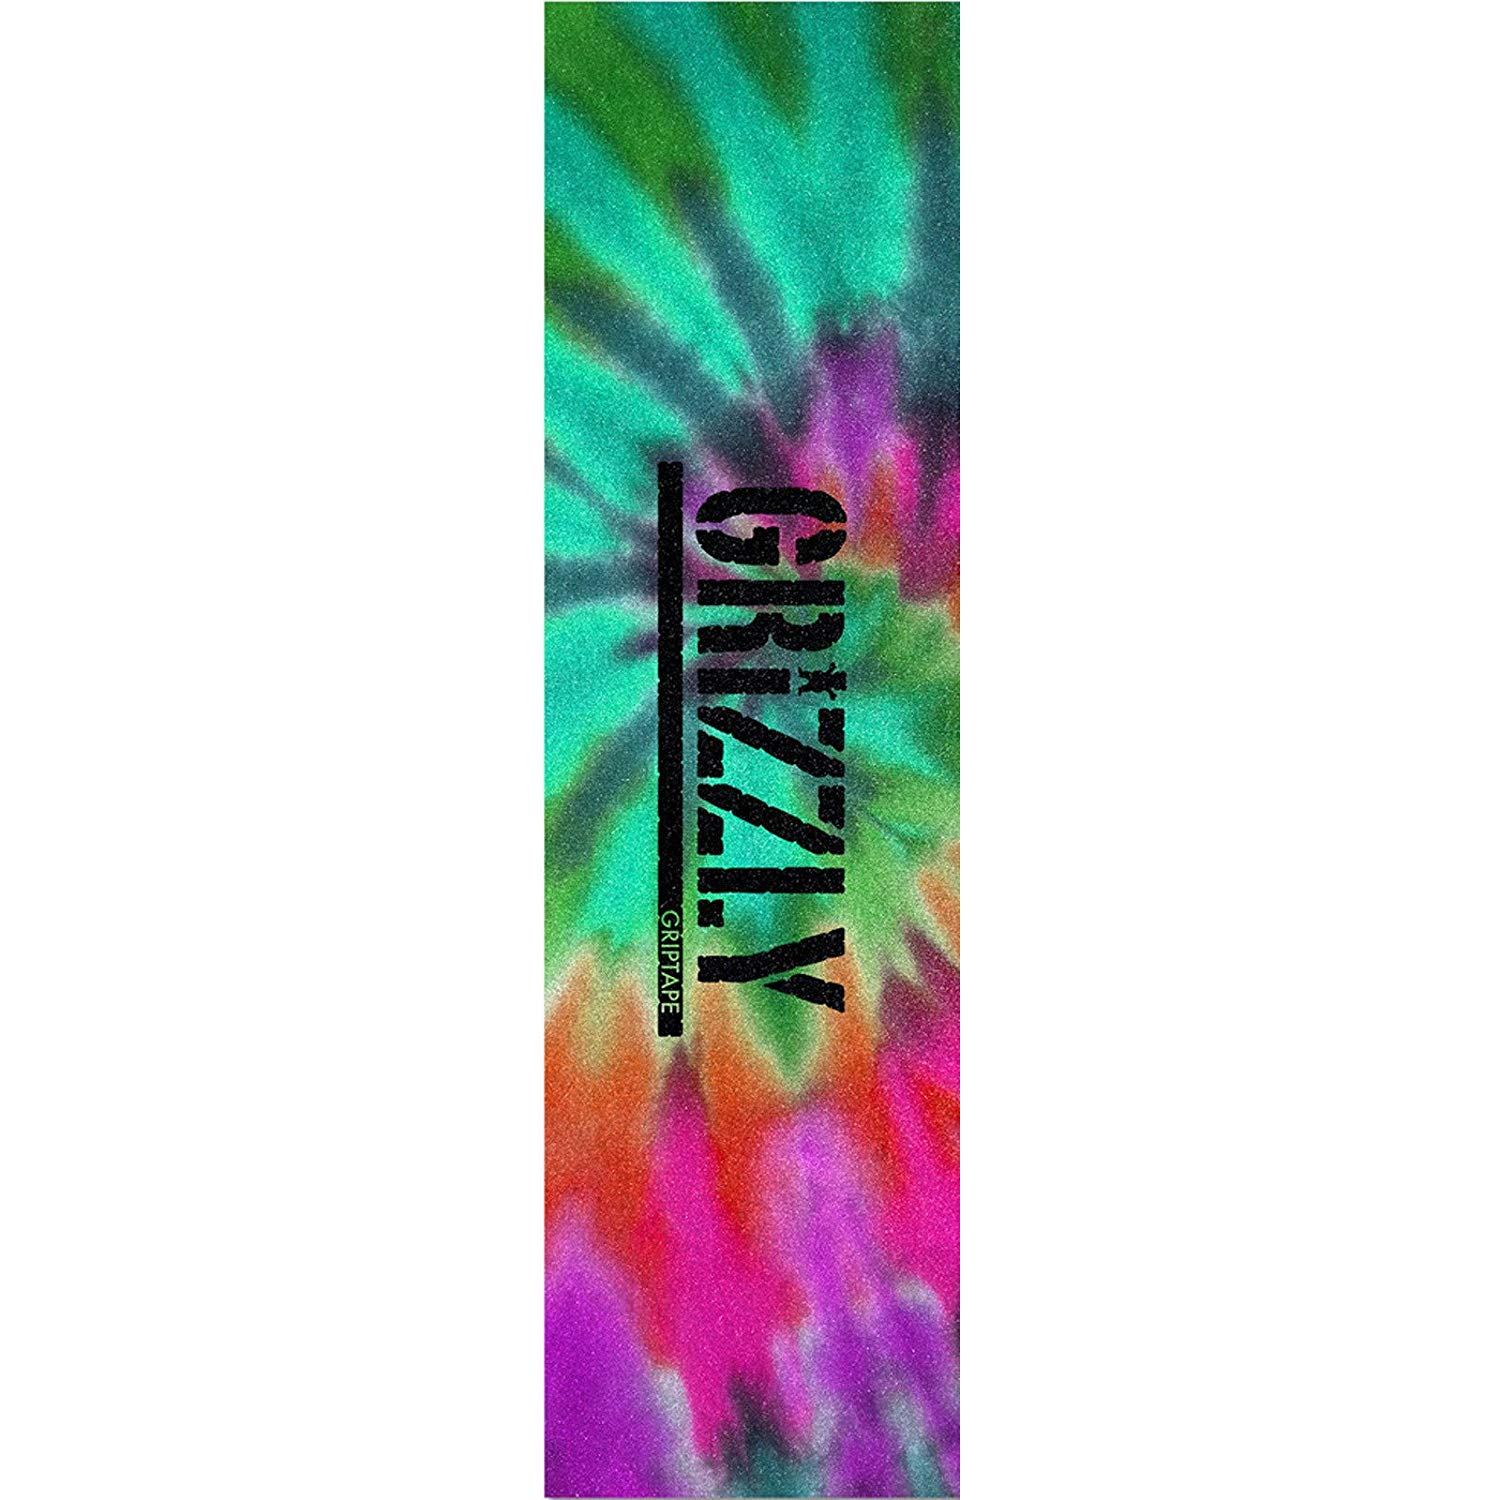 Grizzly Grip Tape T-Puds Stamp In Sub-Alpine Grip Tape 9 x 33